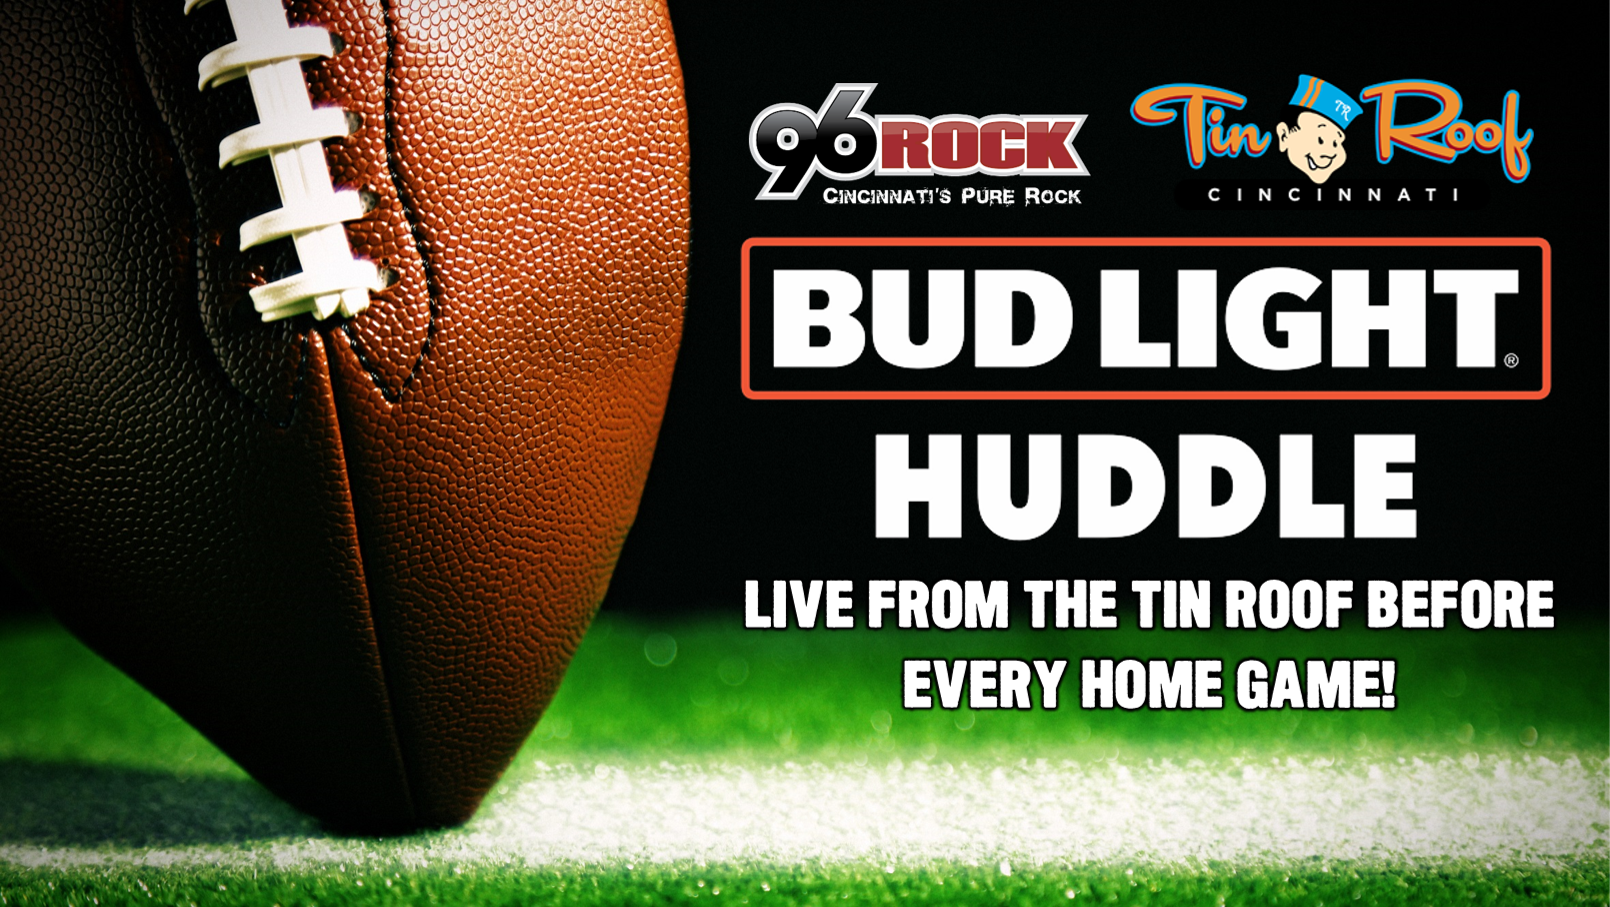 Football Talk, Rock Music & Tickets!